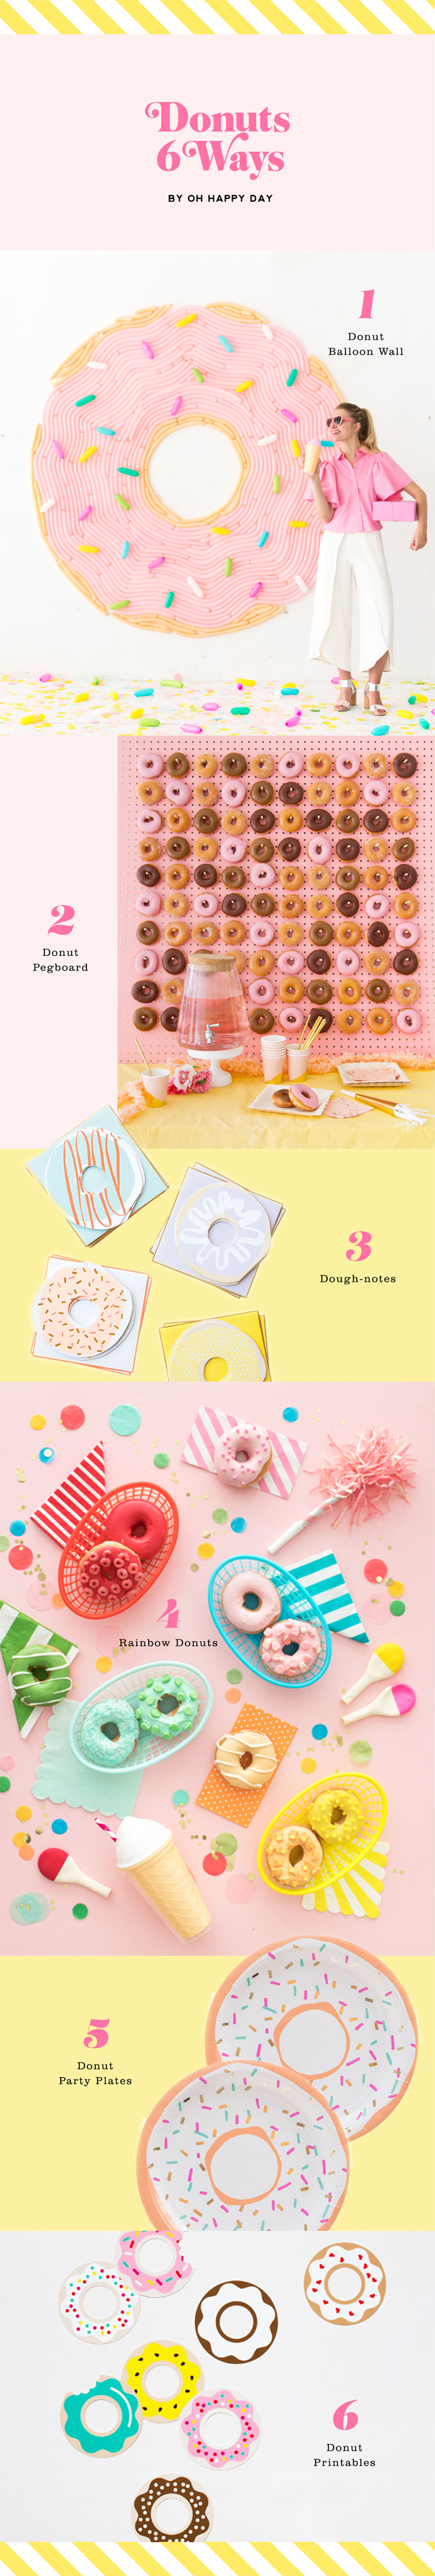 Donuts 6 Ways | Oh Happy Day!